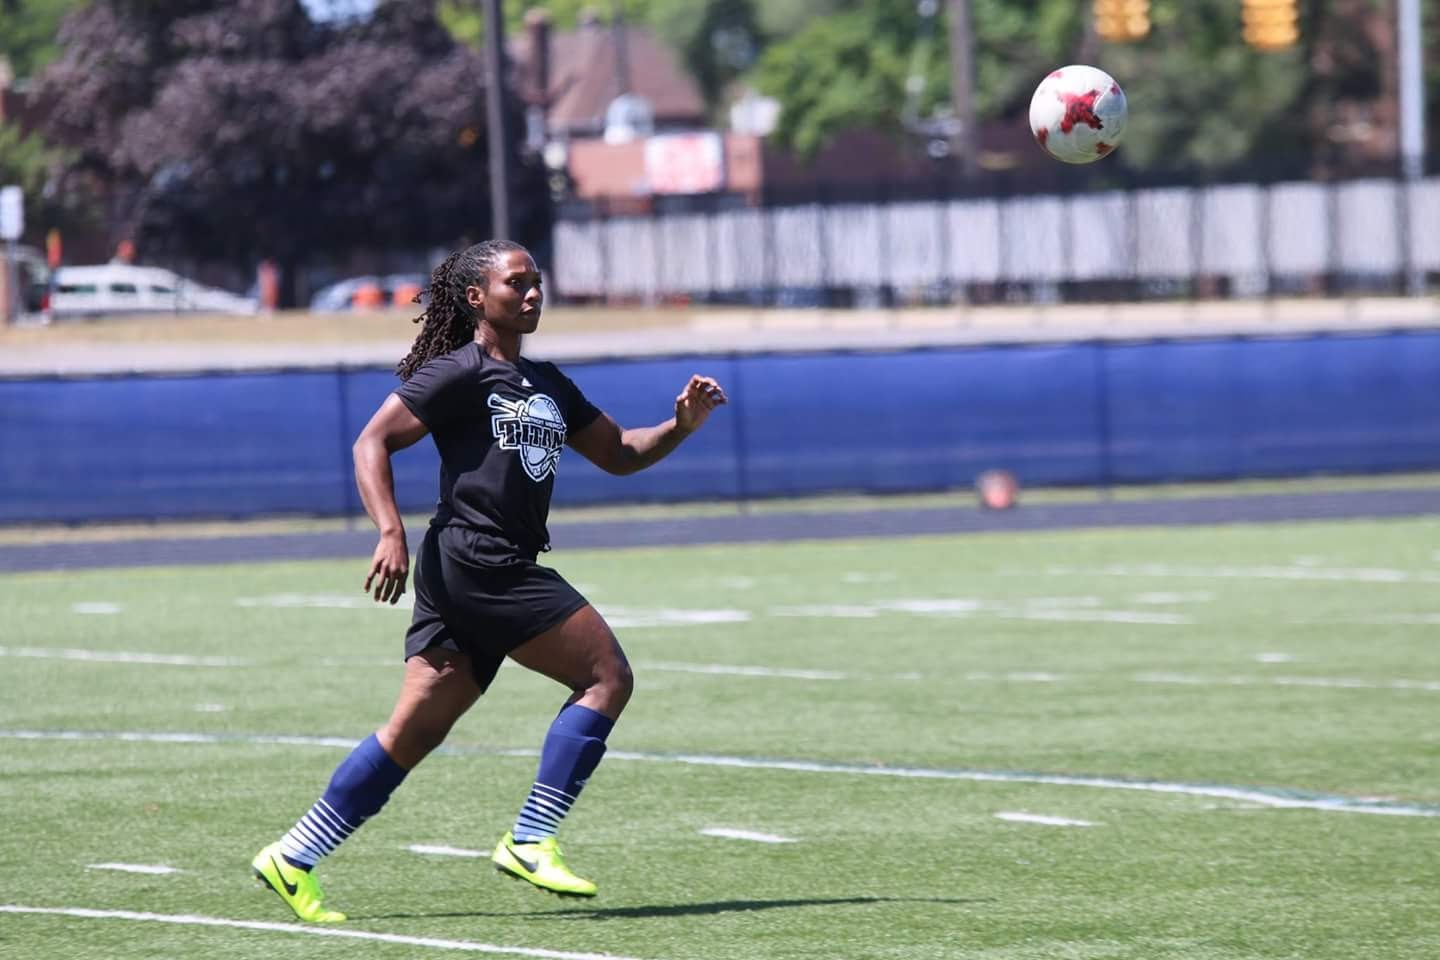 Nathalee Thompson attended the University of Detroit Mercy on a soccer scholarship